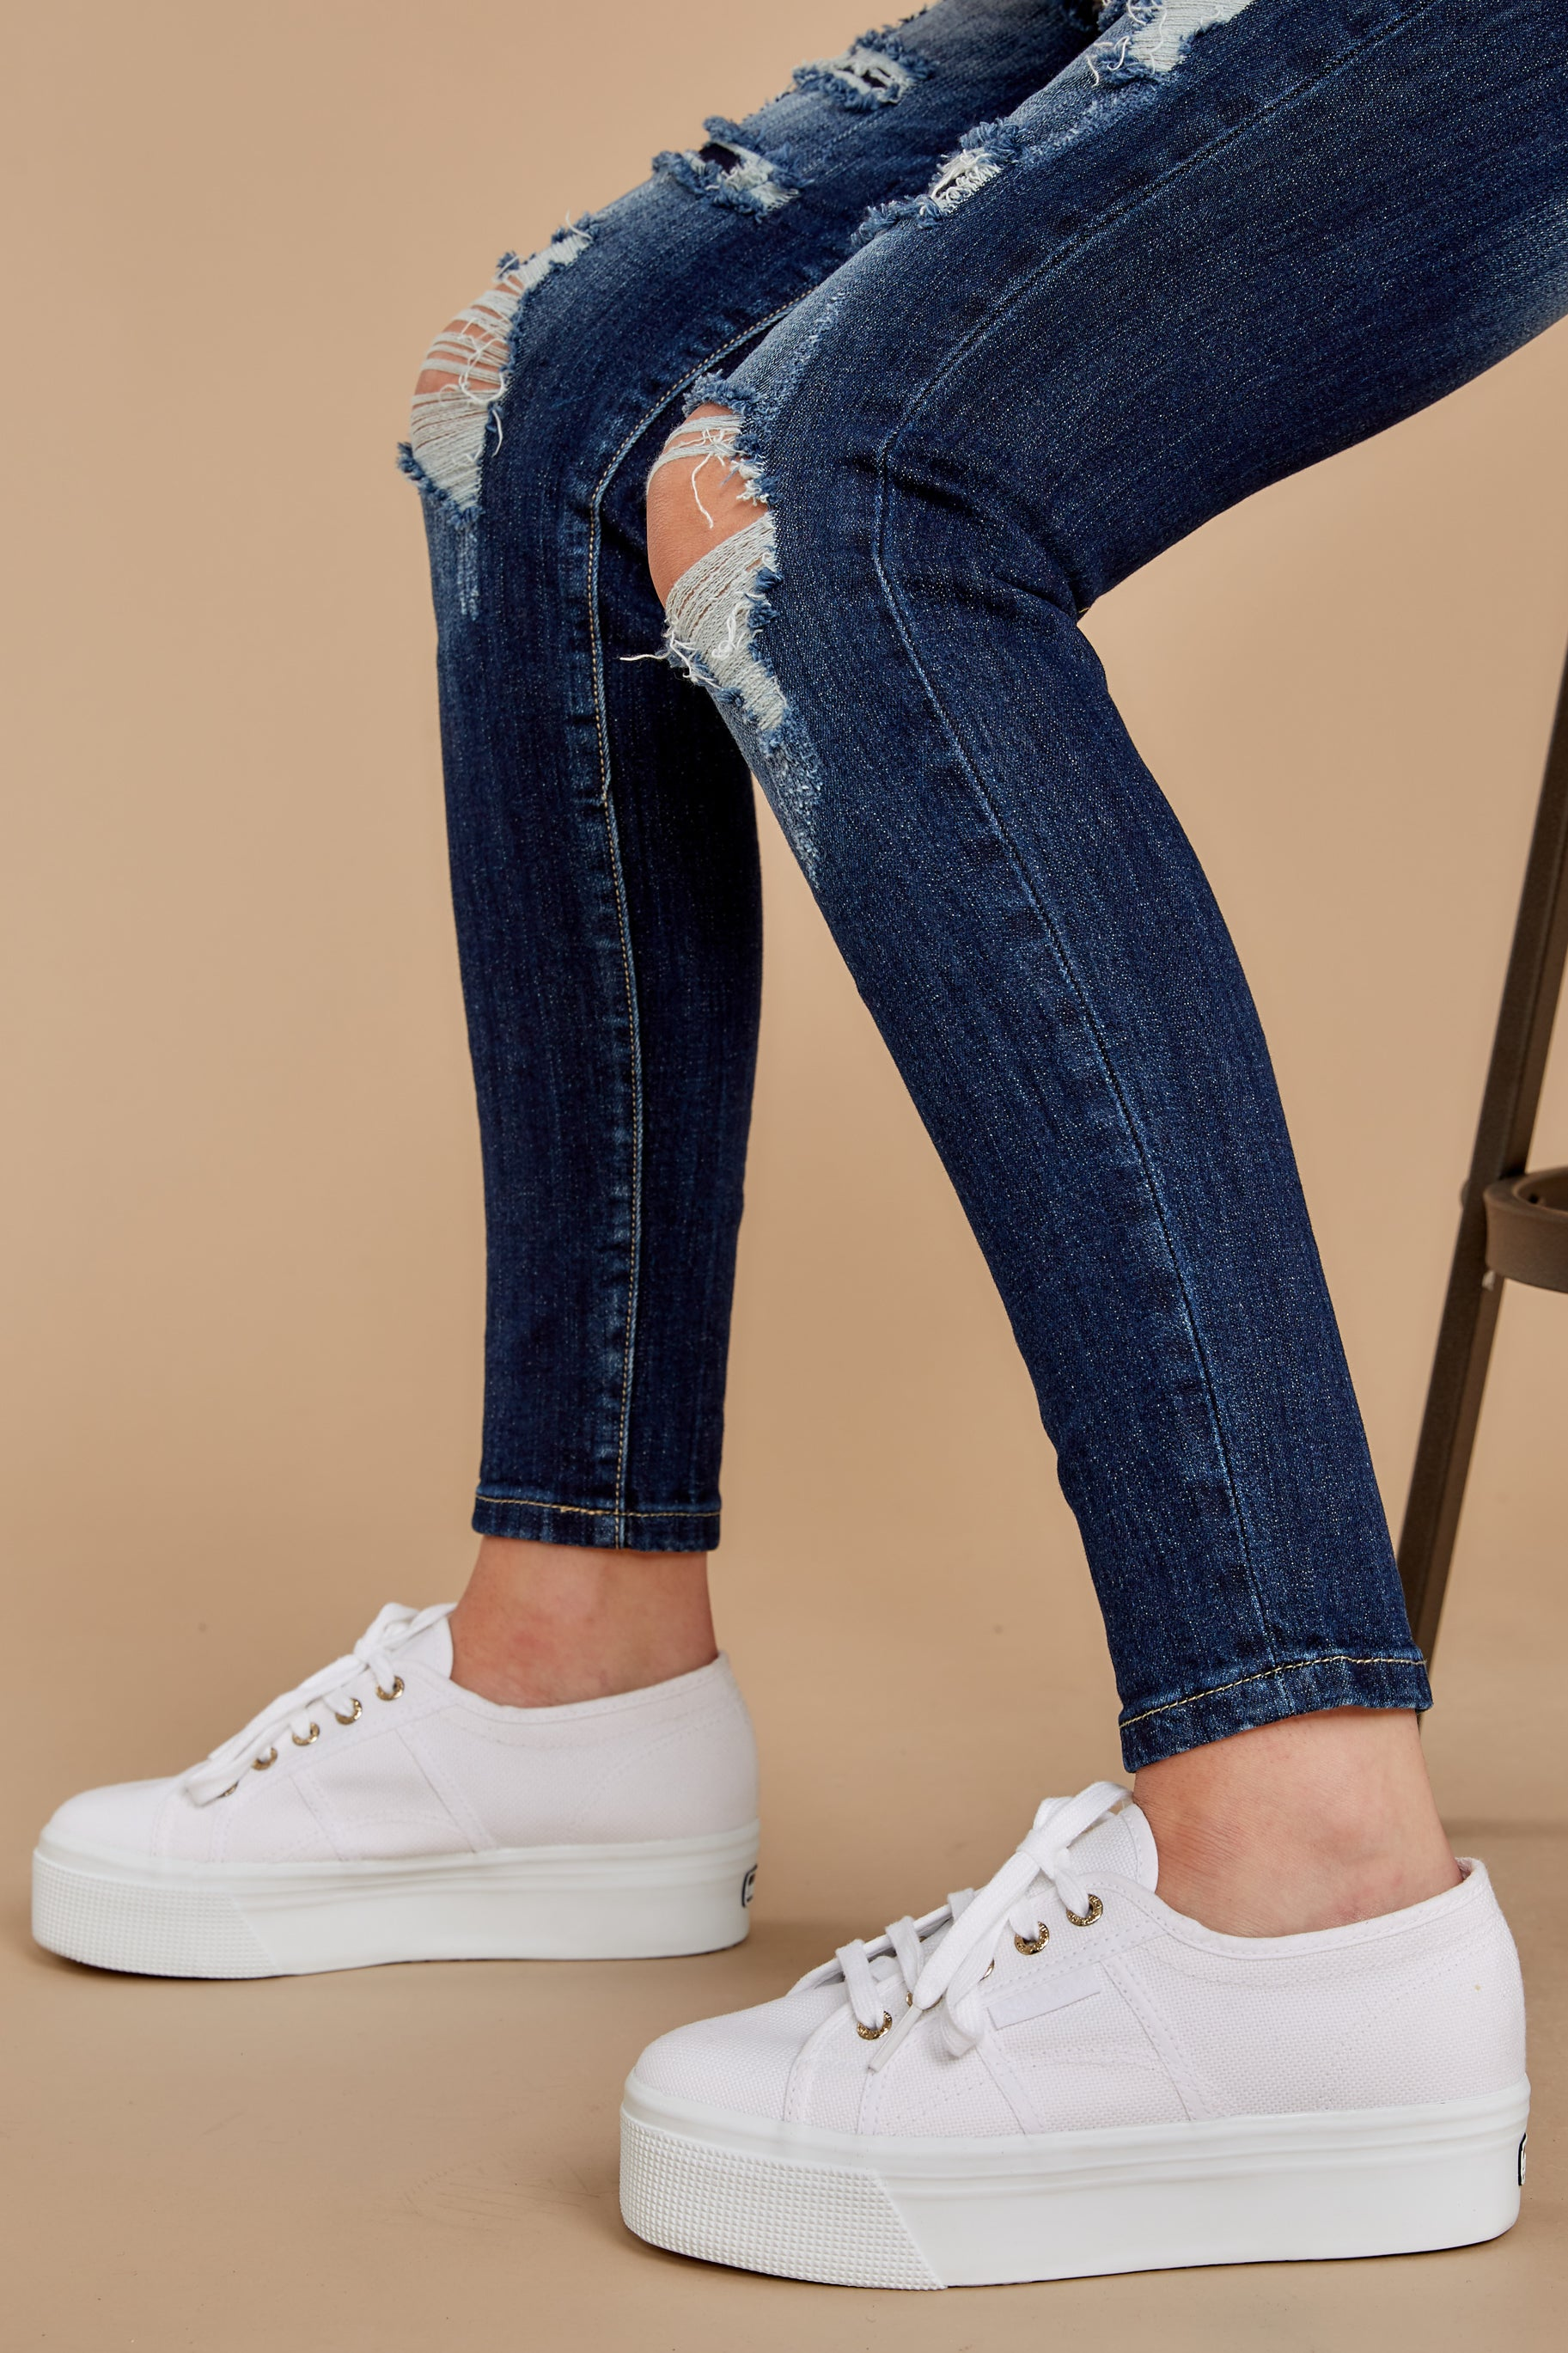 1 2790 Acot White And Gold Platform Sneakers at reddress.com